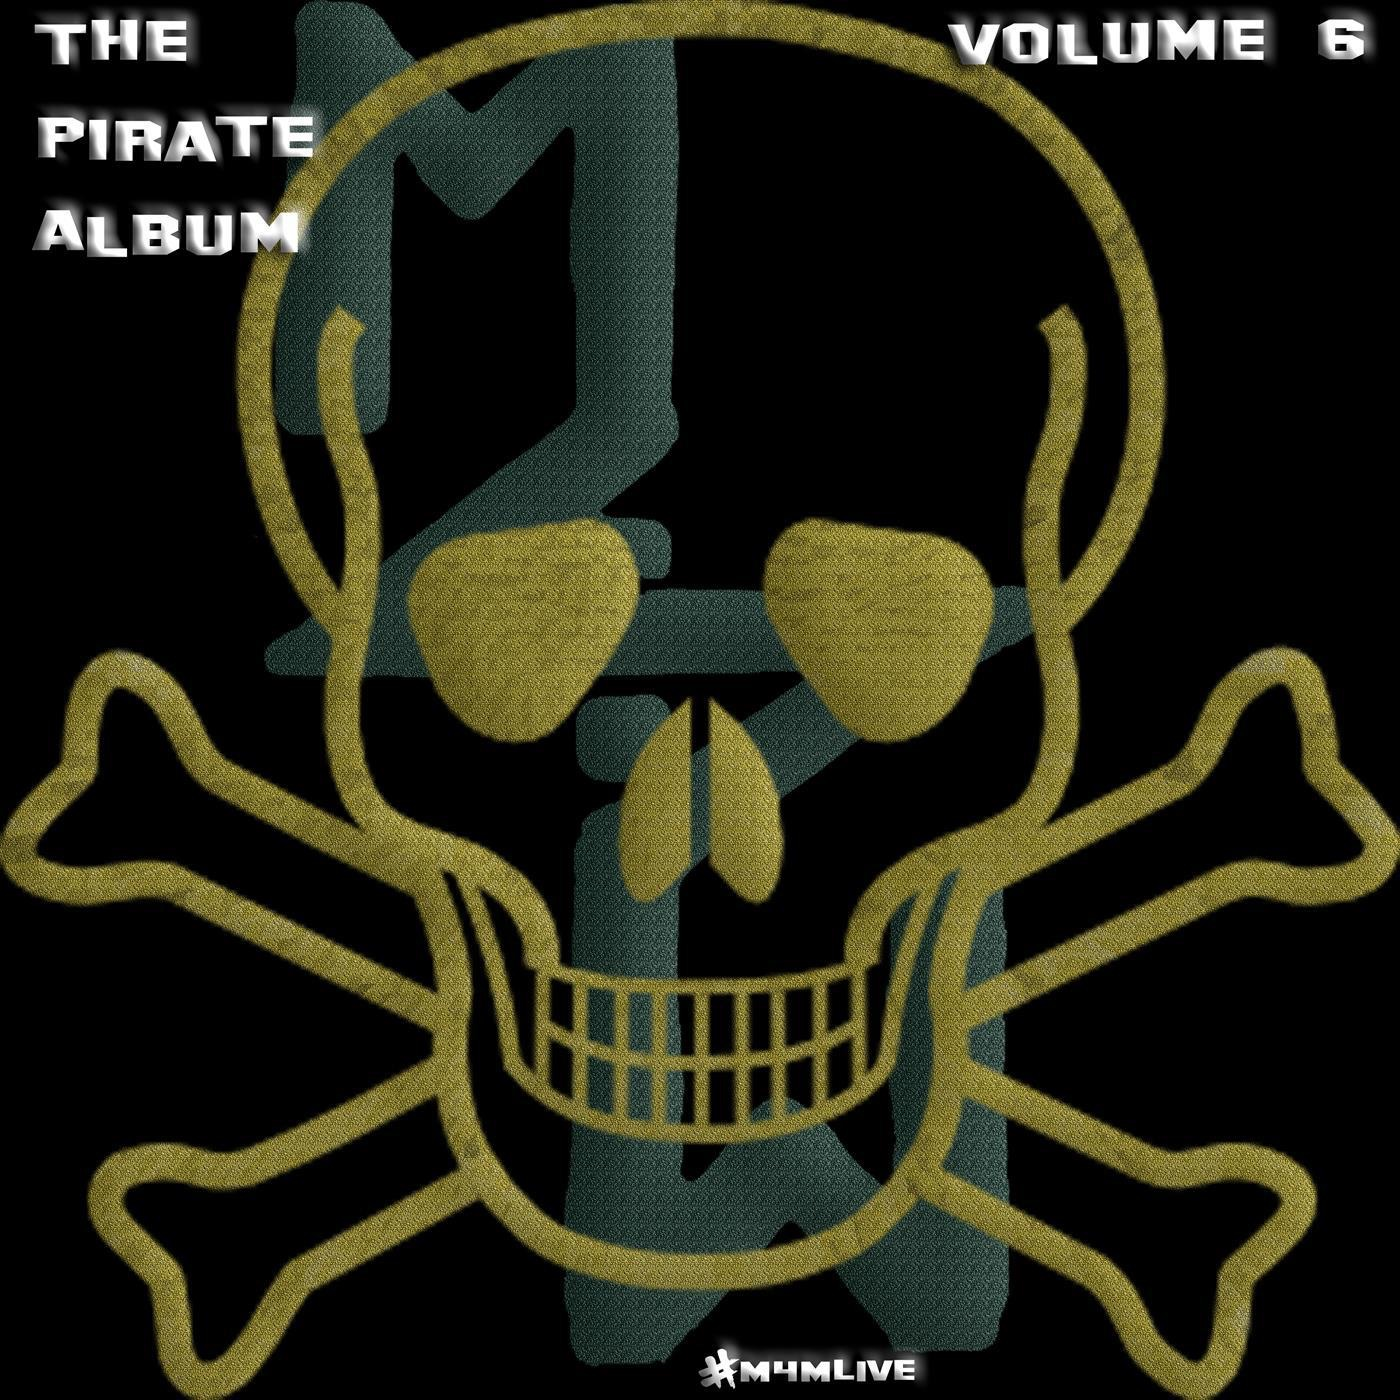 The Pirate Album, Vol. 6 (Half Original Half Tribute)